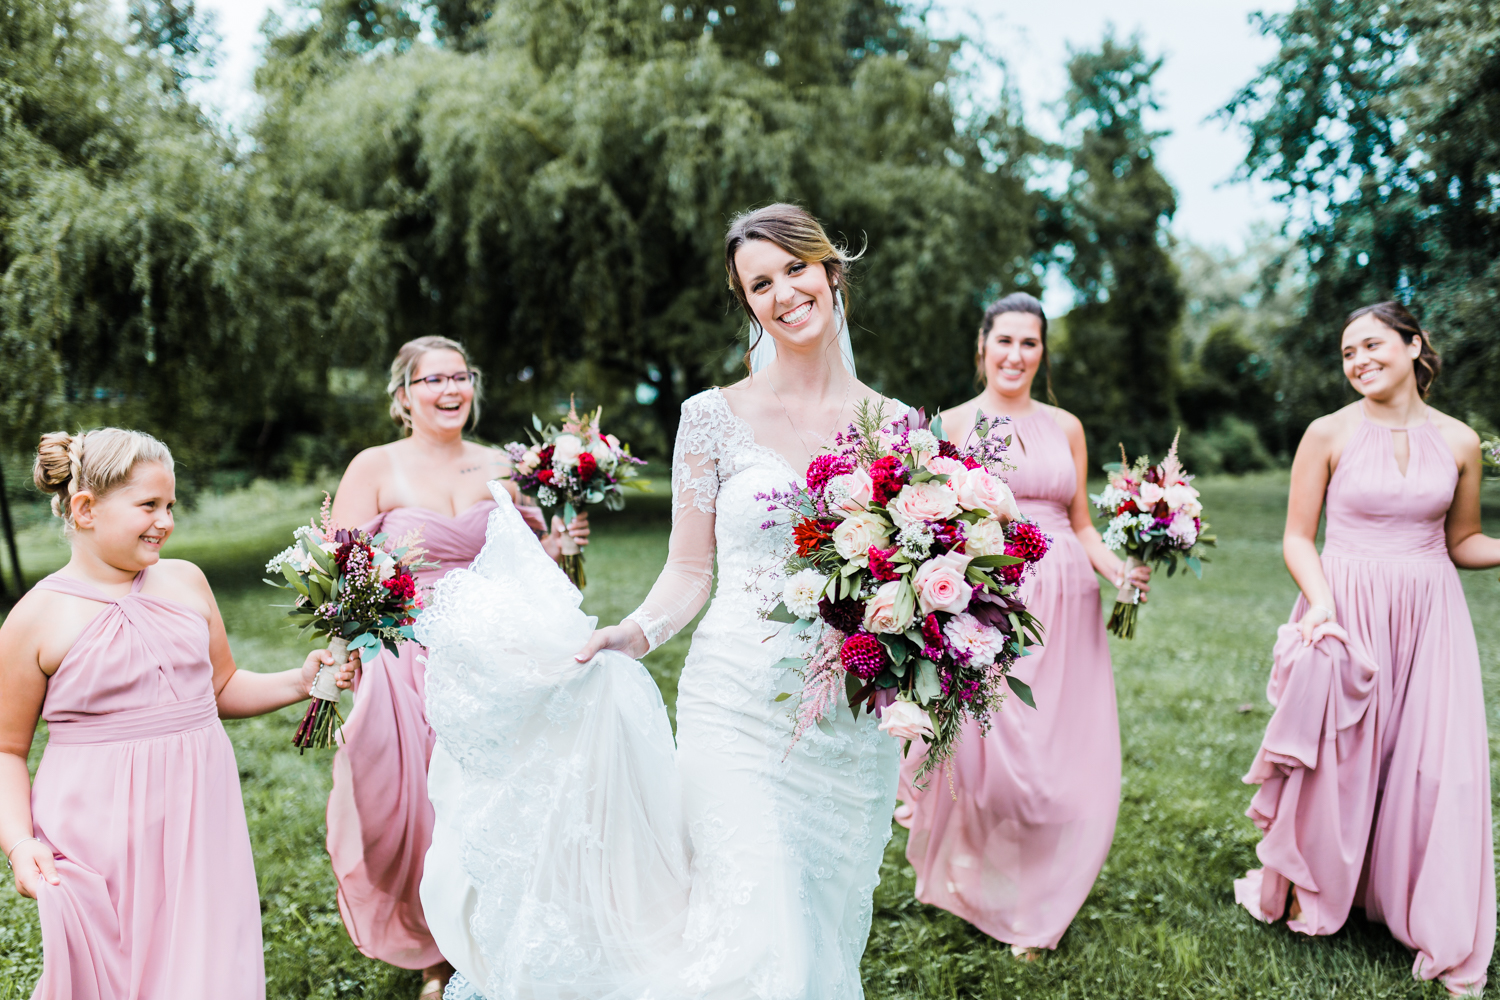 pink wedding inspiration and ideas in Maryland - rainy MD weddings